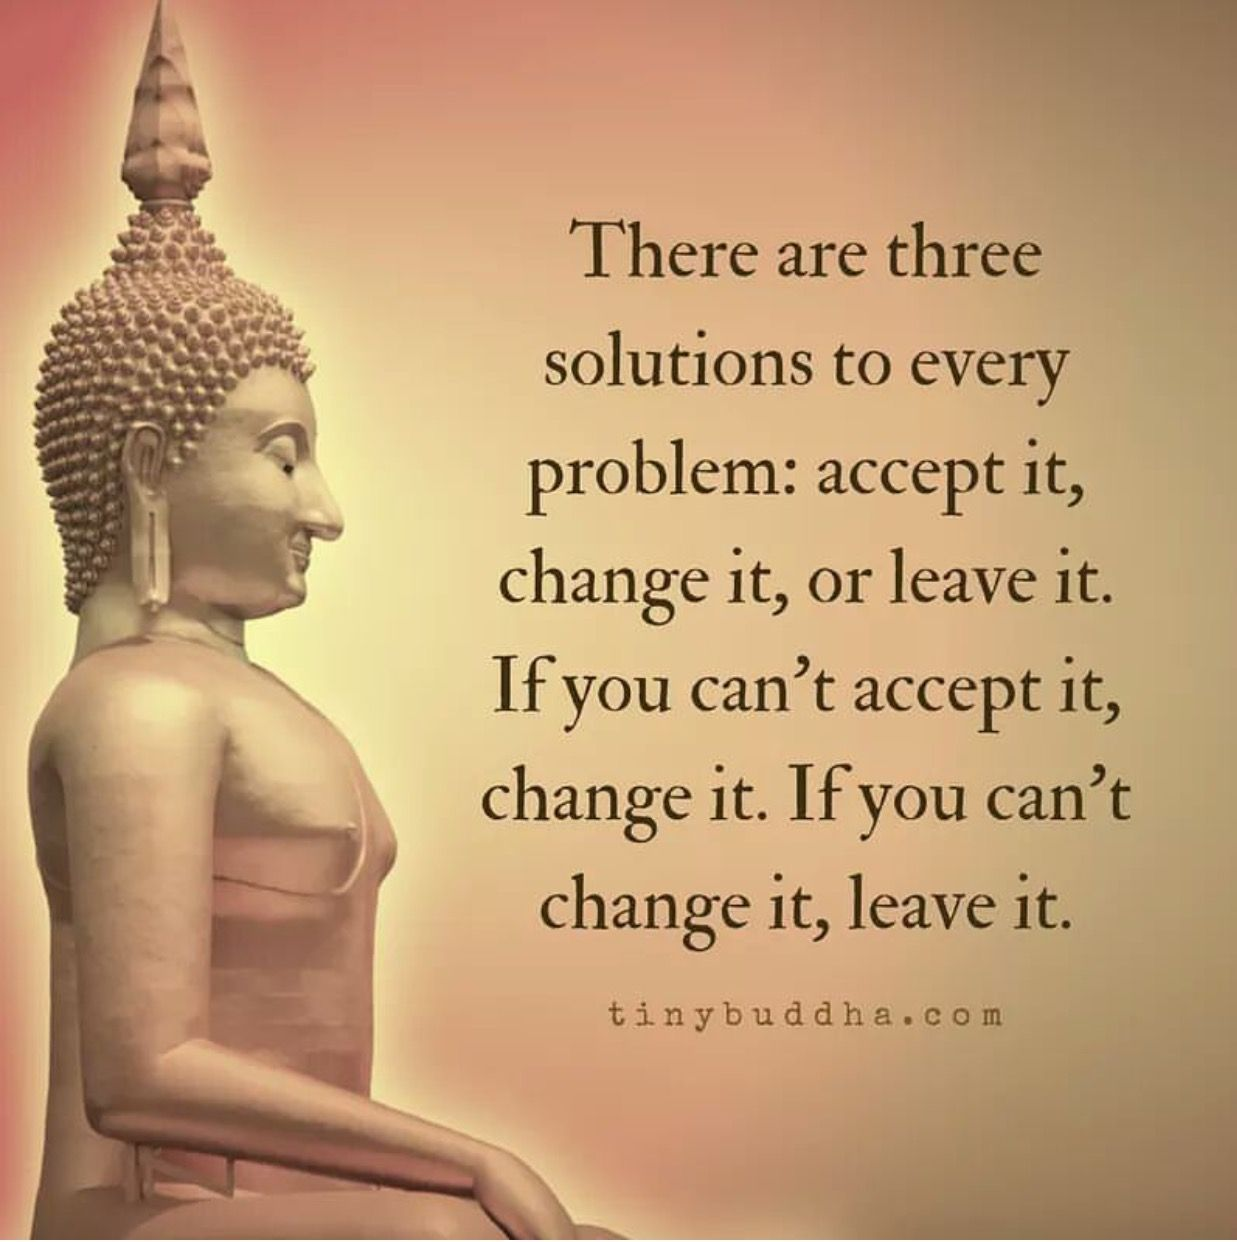 Pin By Azhamid On Be Happy Pinterest Quotes Buddha Quote And